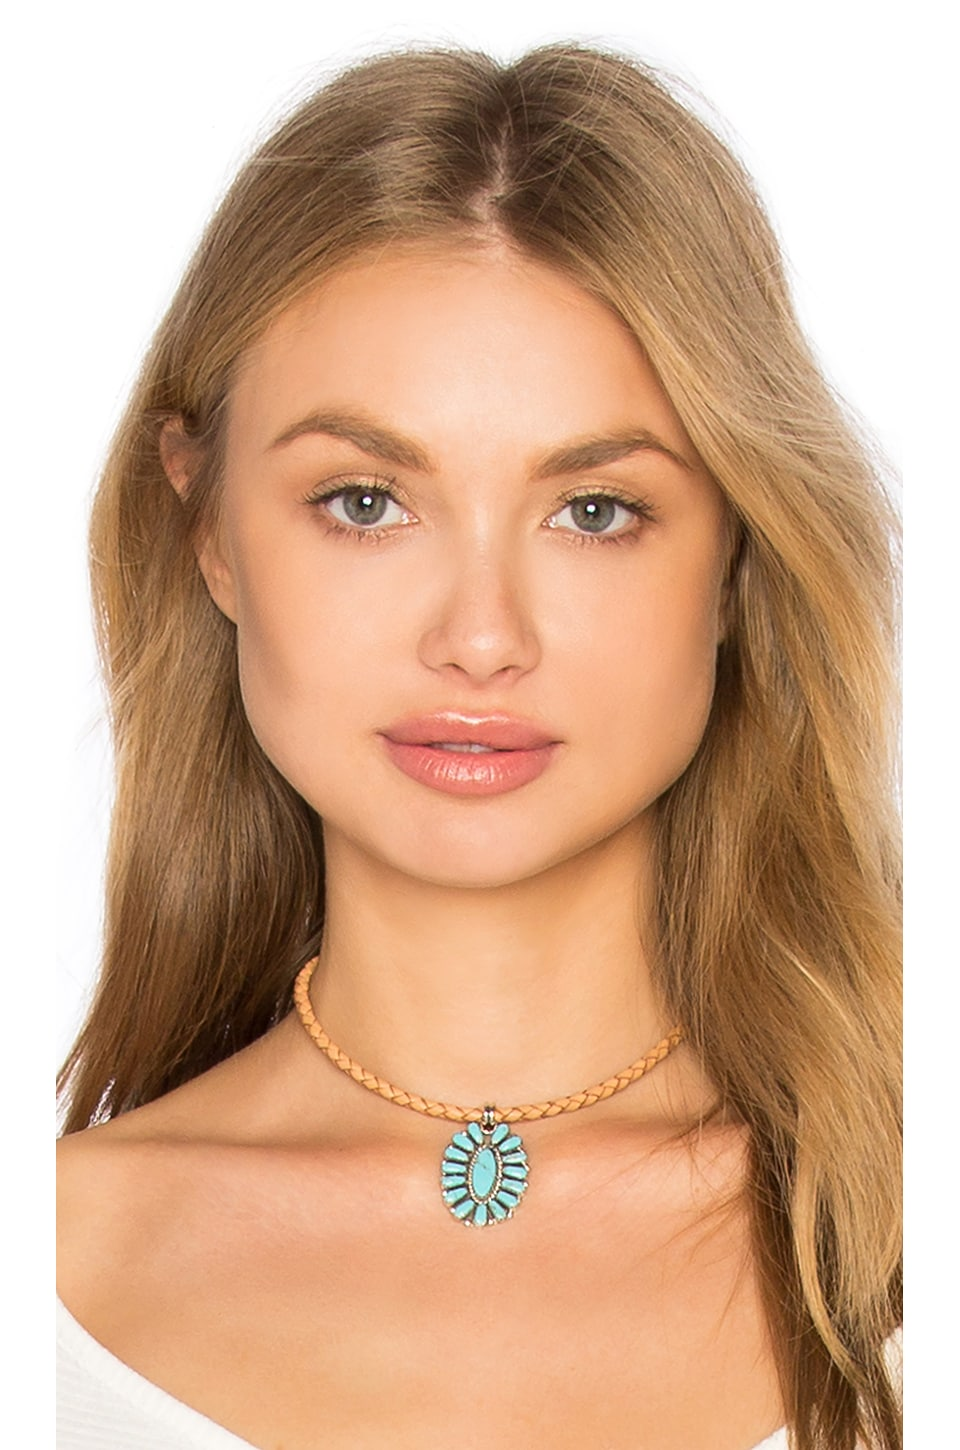 Natalie B Jewelry Sun Goddess Choker in Silver & Turquoise